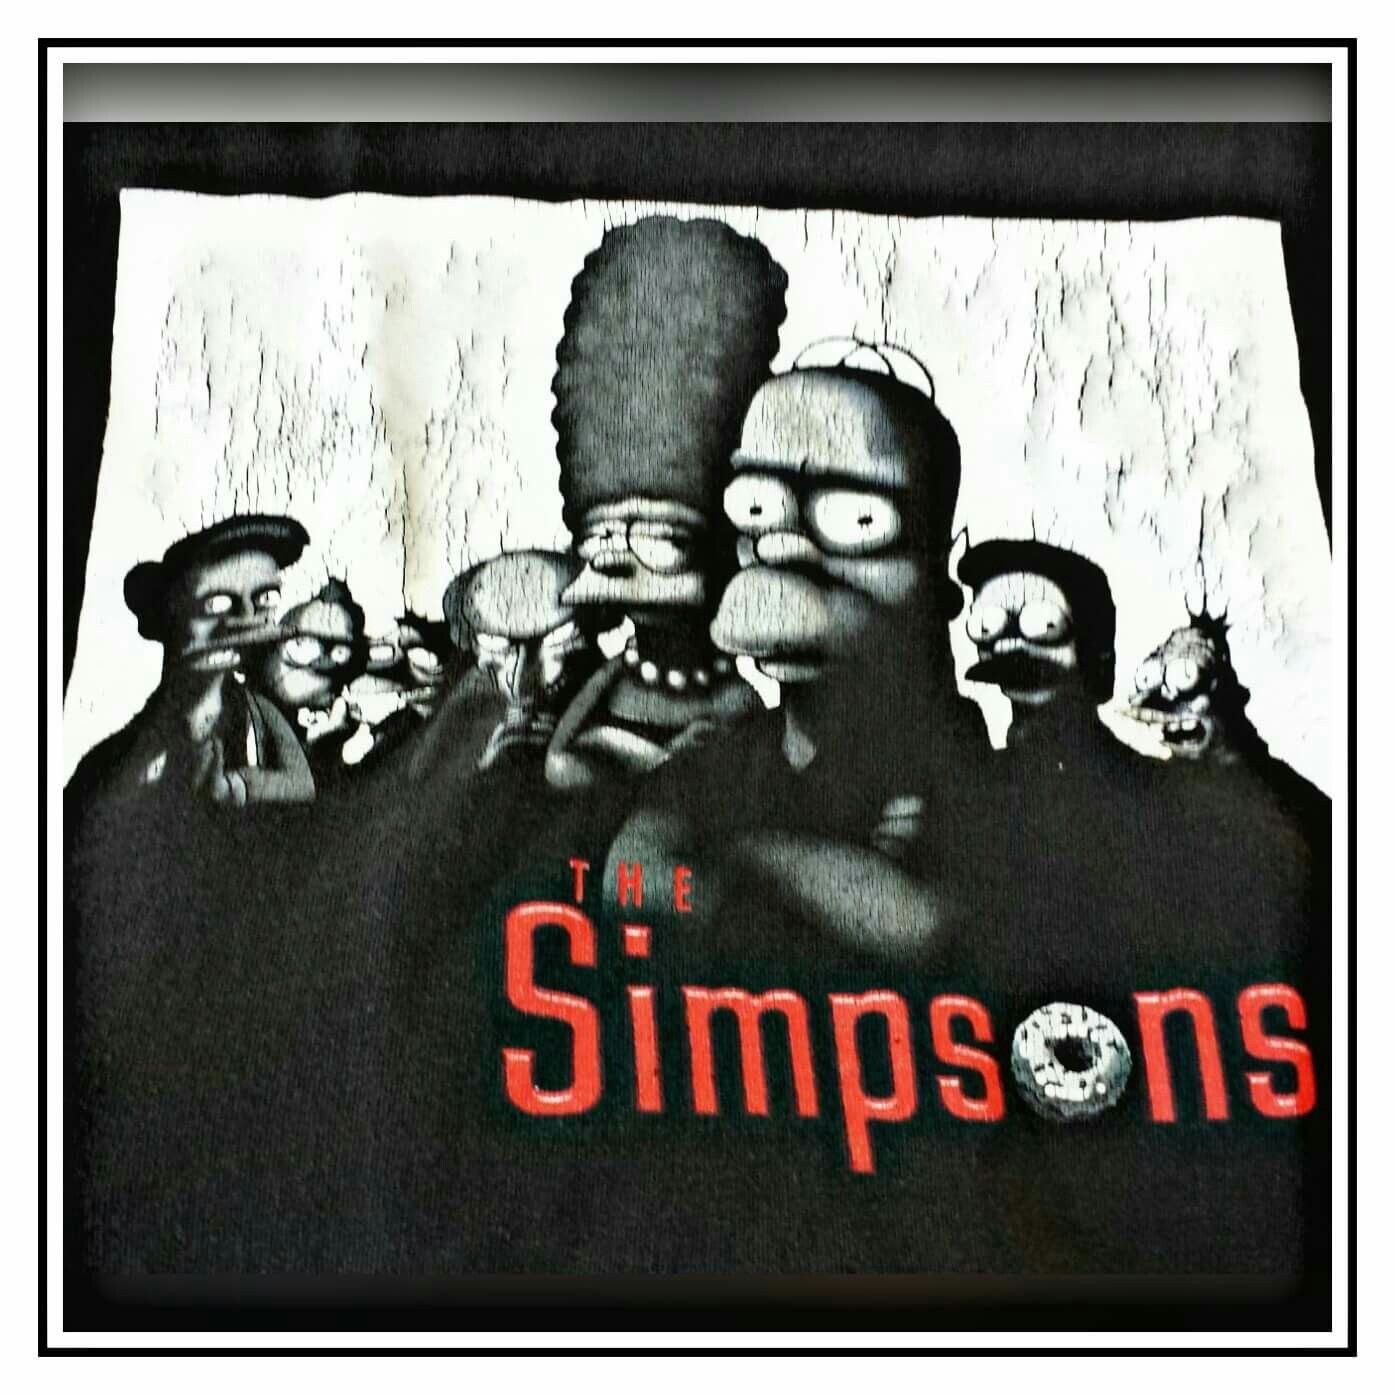 The Simpsons tshirt